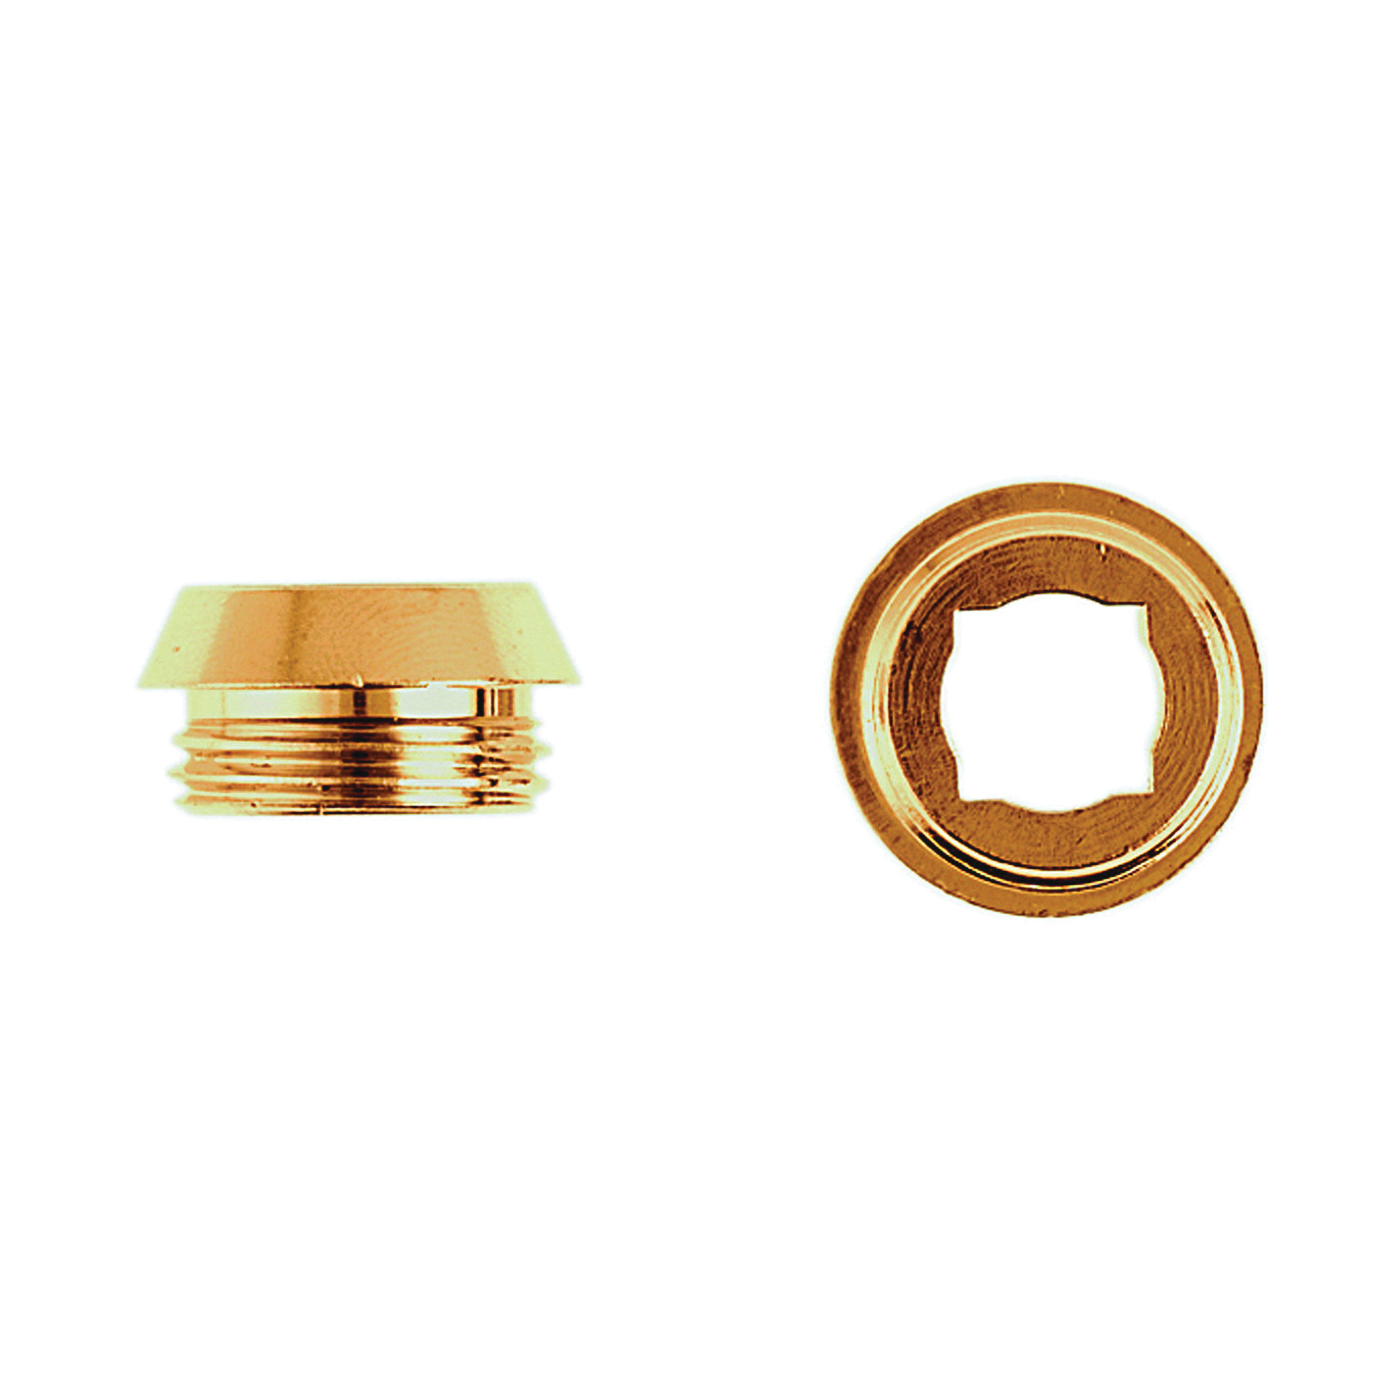 Picture of Danco 30037B Faucet Bibb Seat, Brass, For: Price Pfister and Sinclare Faucet